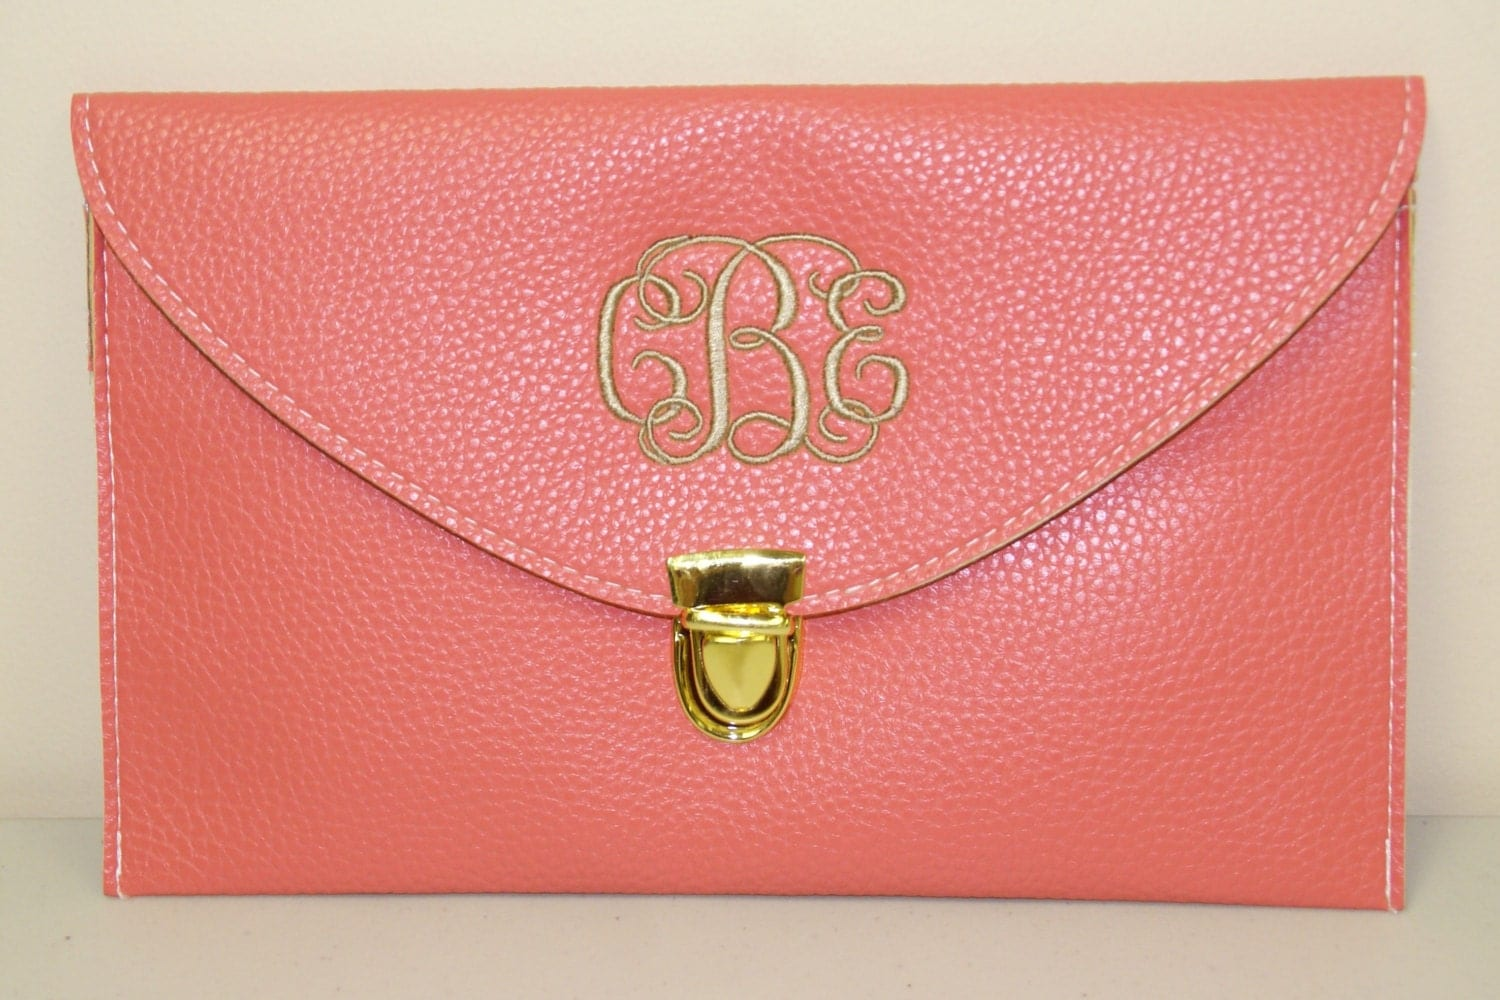 Monogrammed Clutch Purse - Choose from 13 Purse Colors